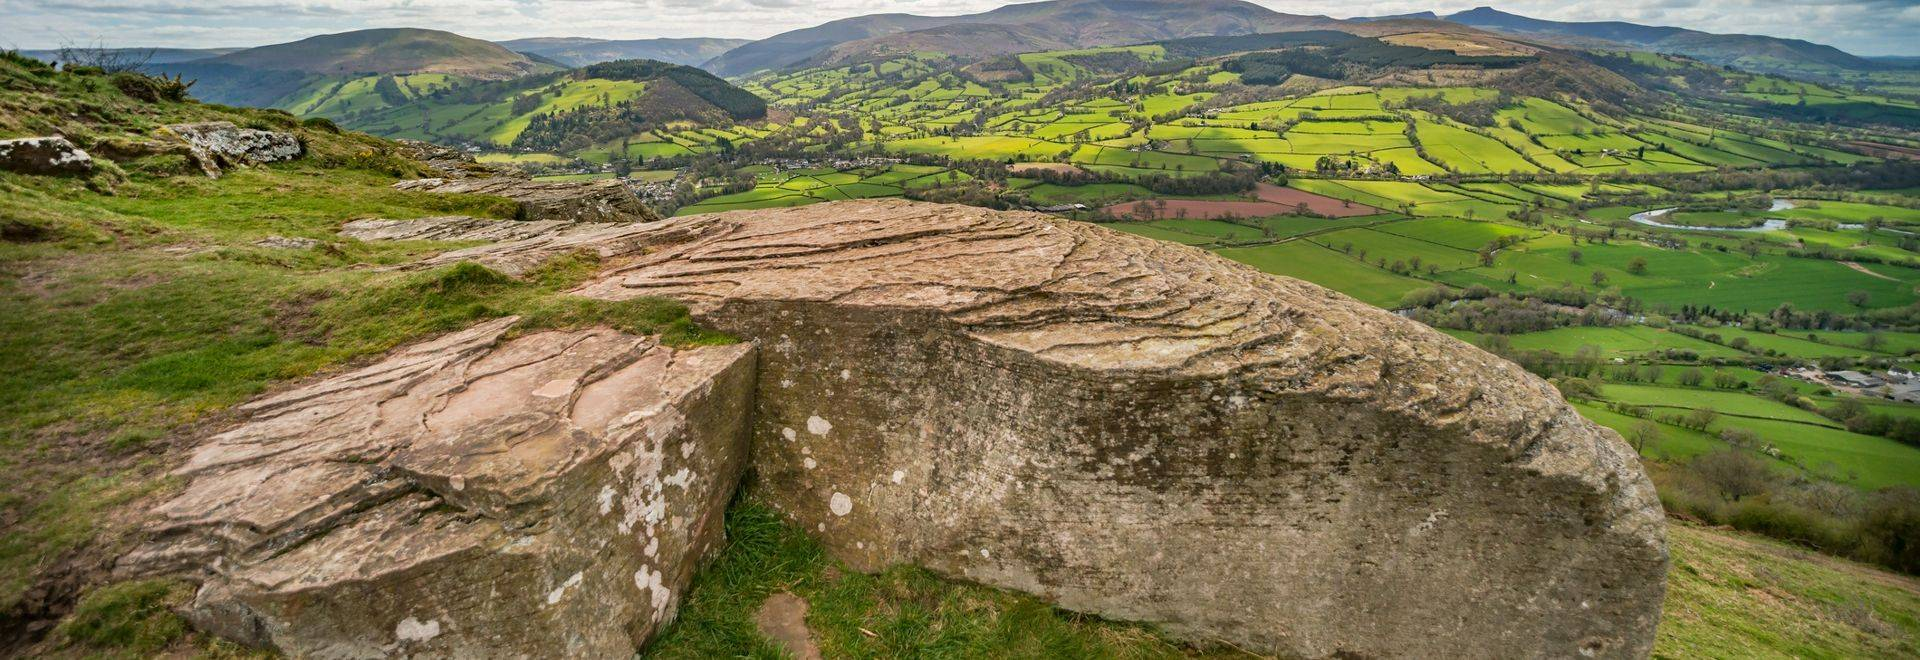 View over Usk valley to Brecon Beacons from Allt yr esgair hillside. Large rock with rippled pattern in foreground. Wales, U…